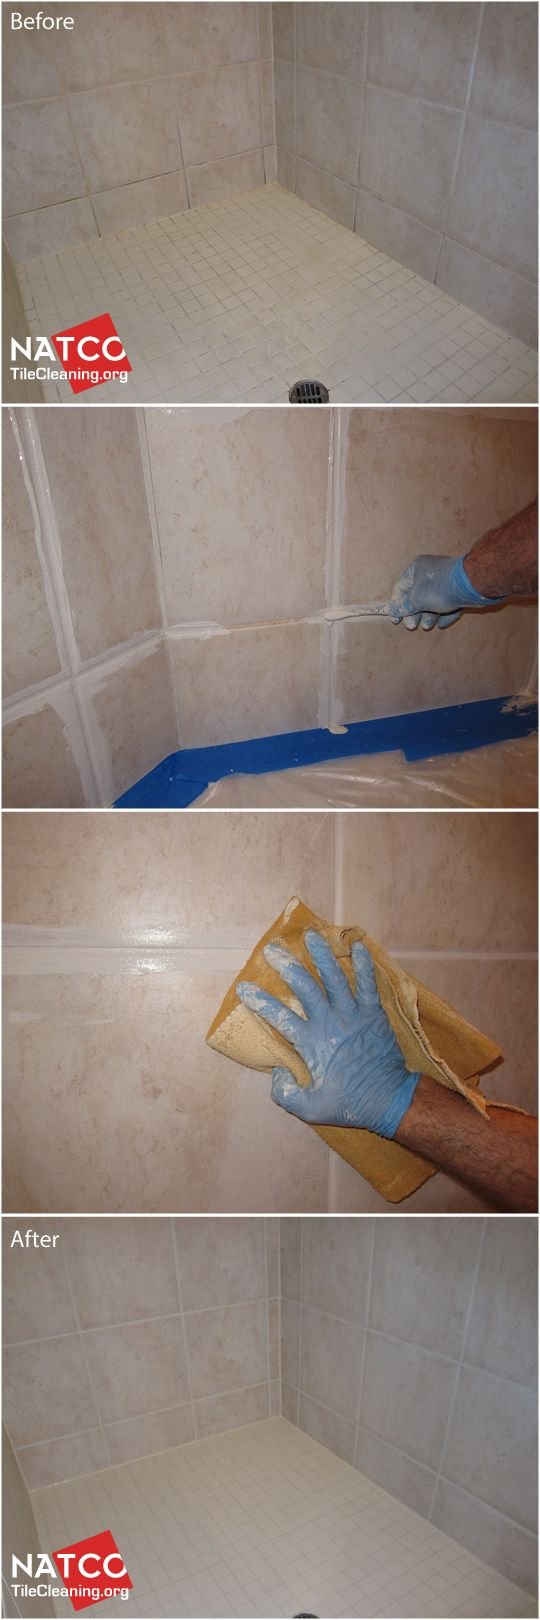 17 best images about cleaning moldy shower grout and caulk on pinterest ceramics clean tile. Black Bedroom Furniture Sets. Home Design Ideas